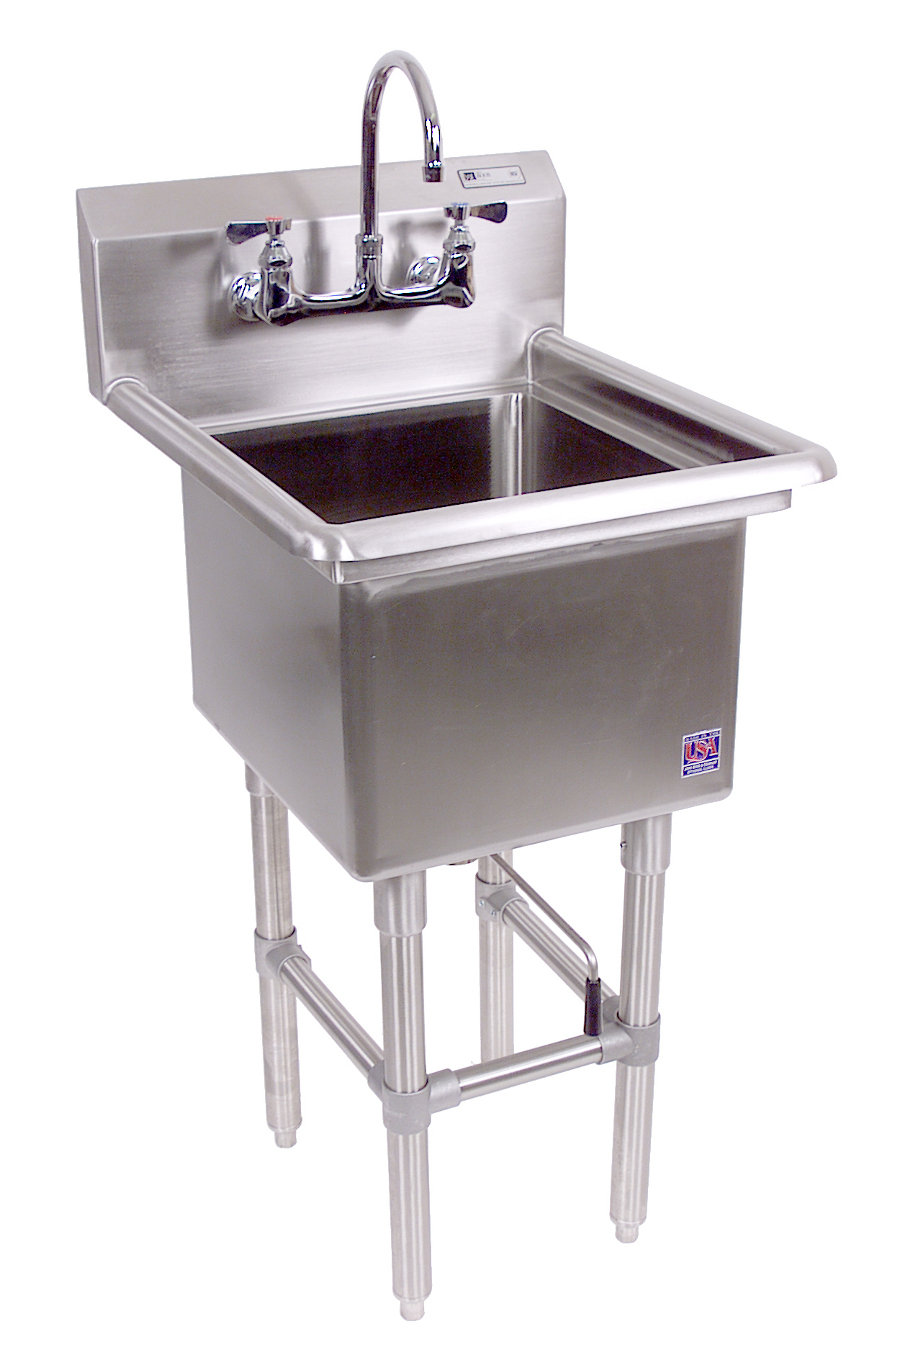 John Boos NSF Pro Bowl Compartment Sink - 1 Bowl, No Drainboard